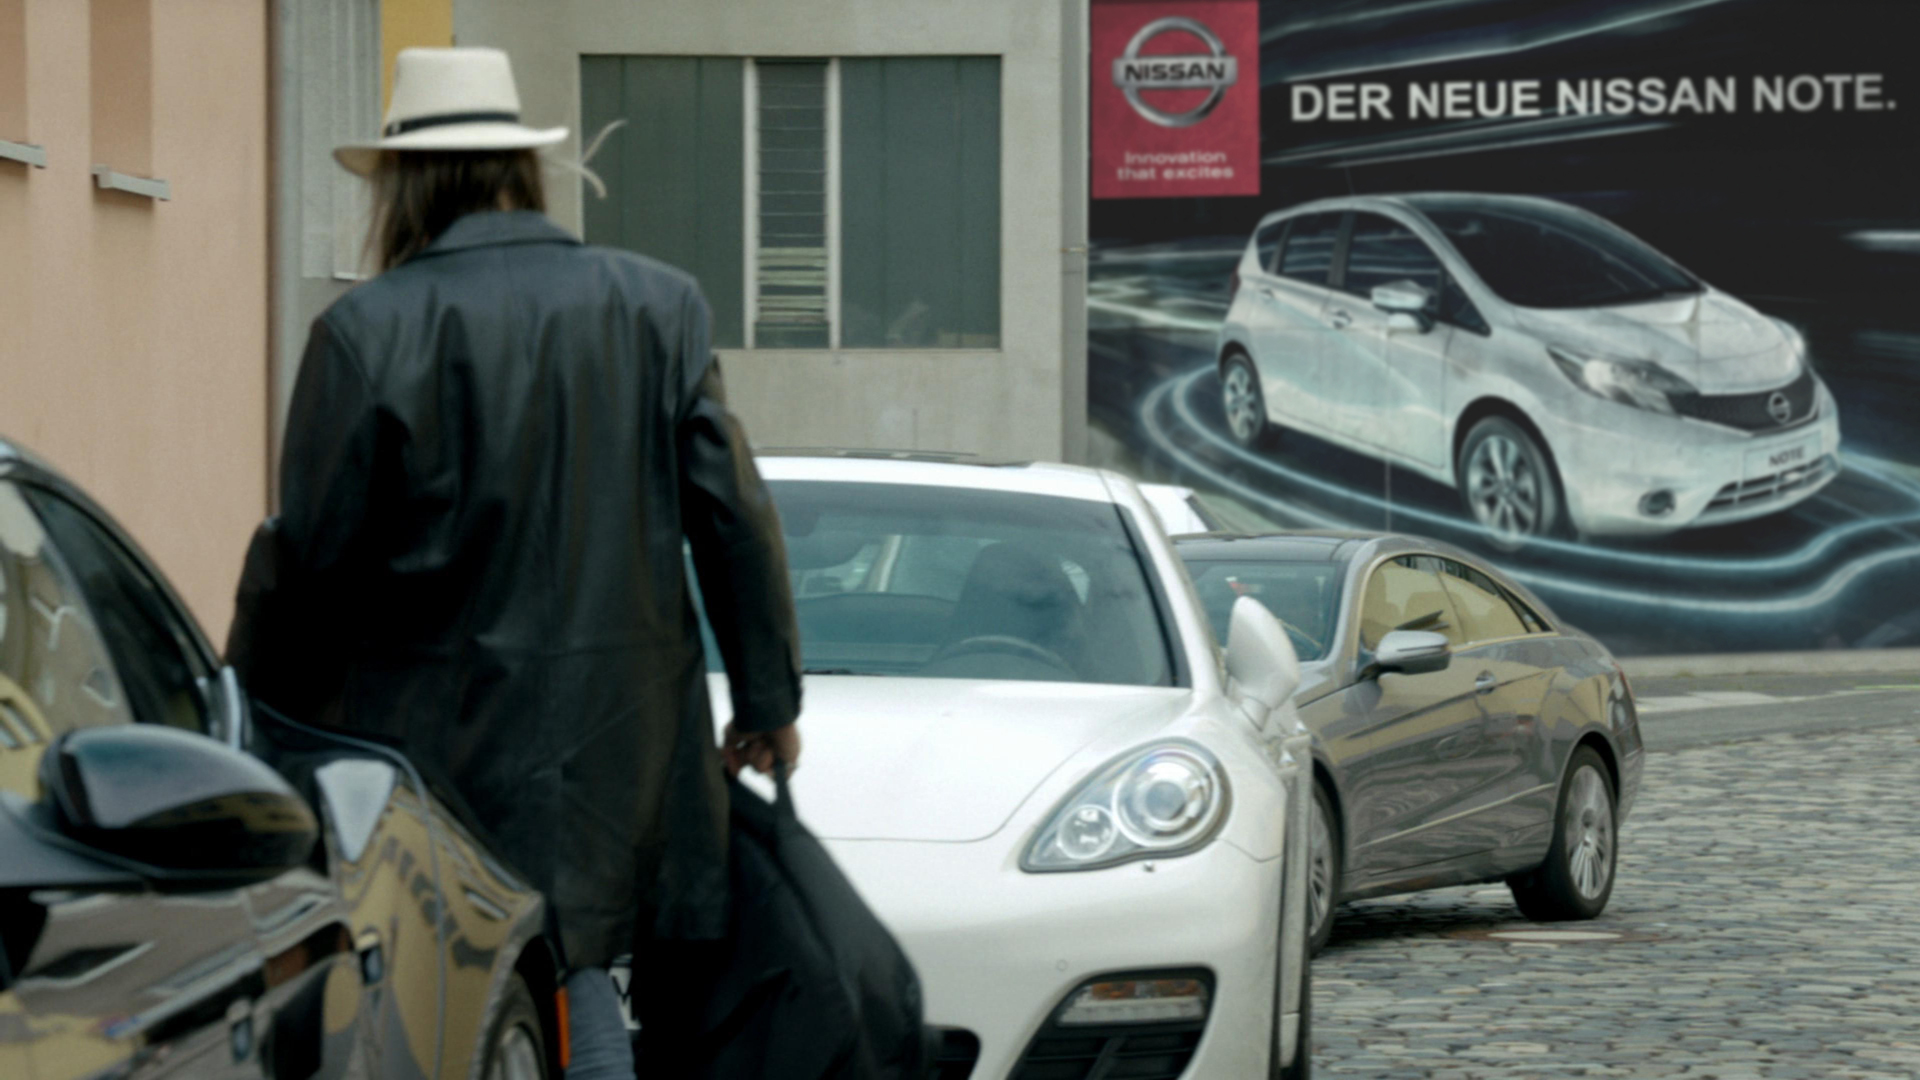 Nissan opted to use Mirriad In-Video Advertising. We embedded their ad units into the most contextually relevant scenes